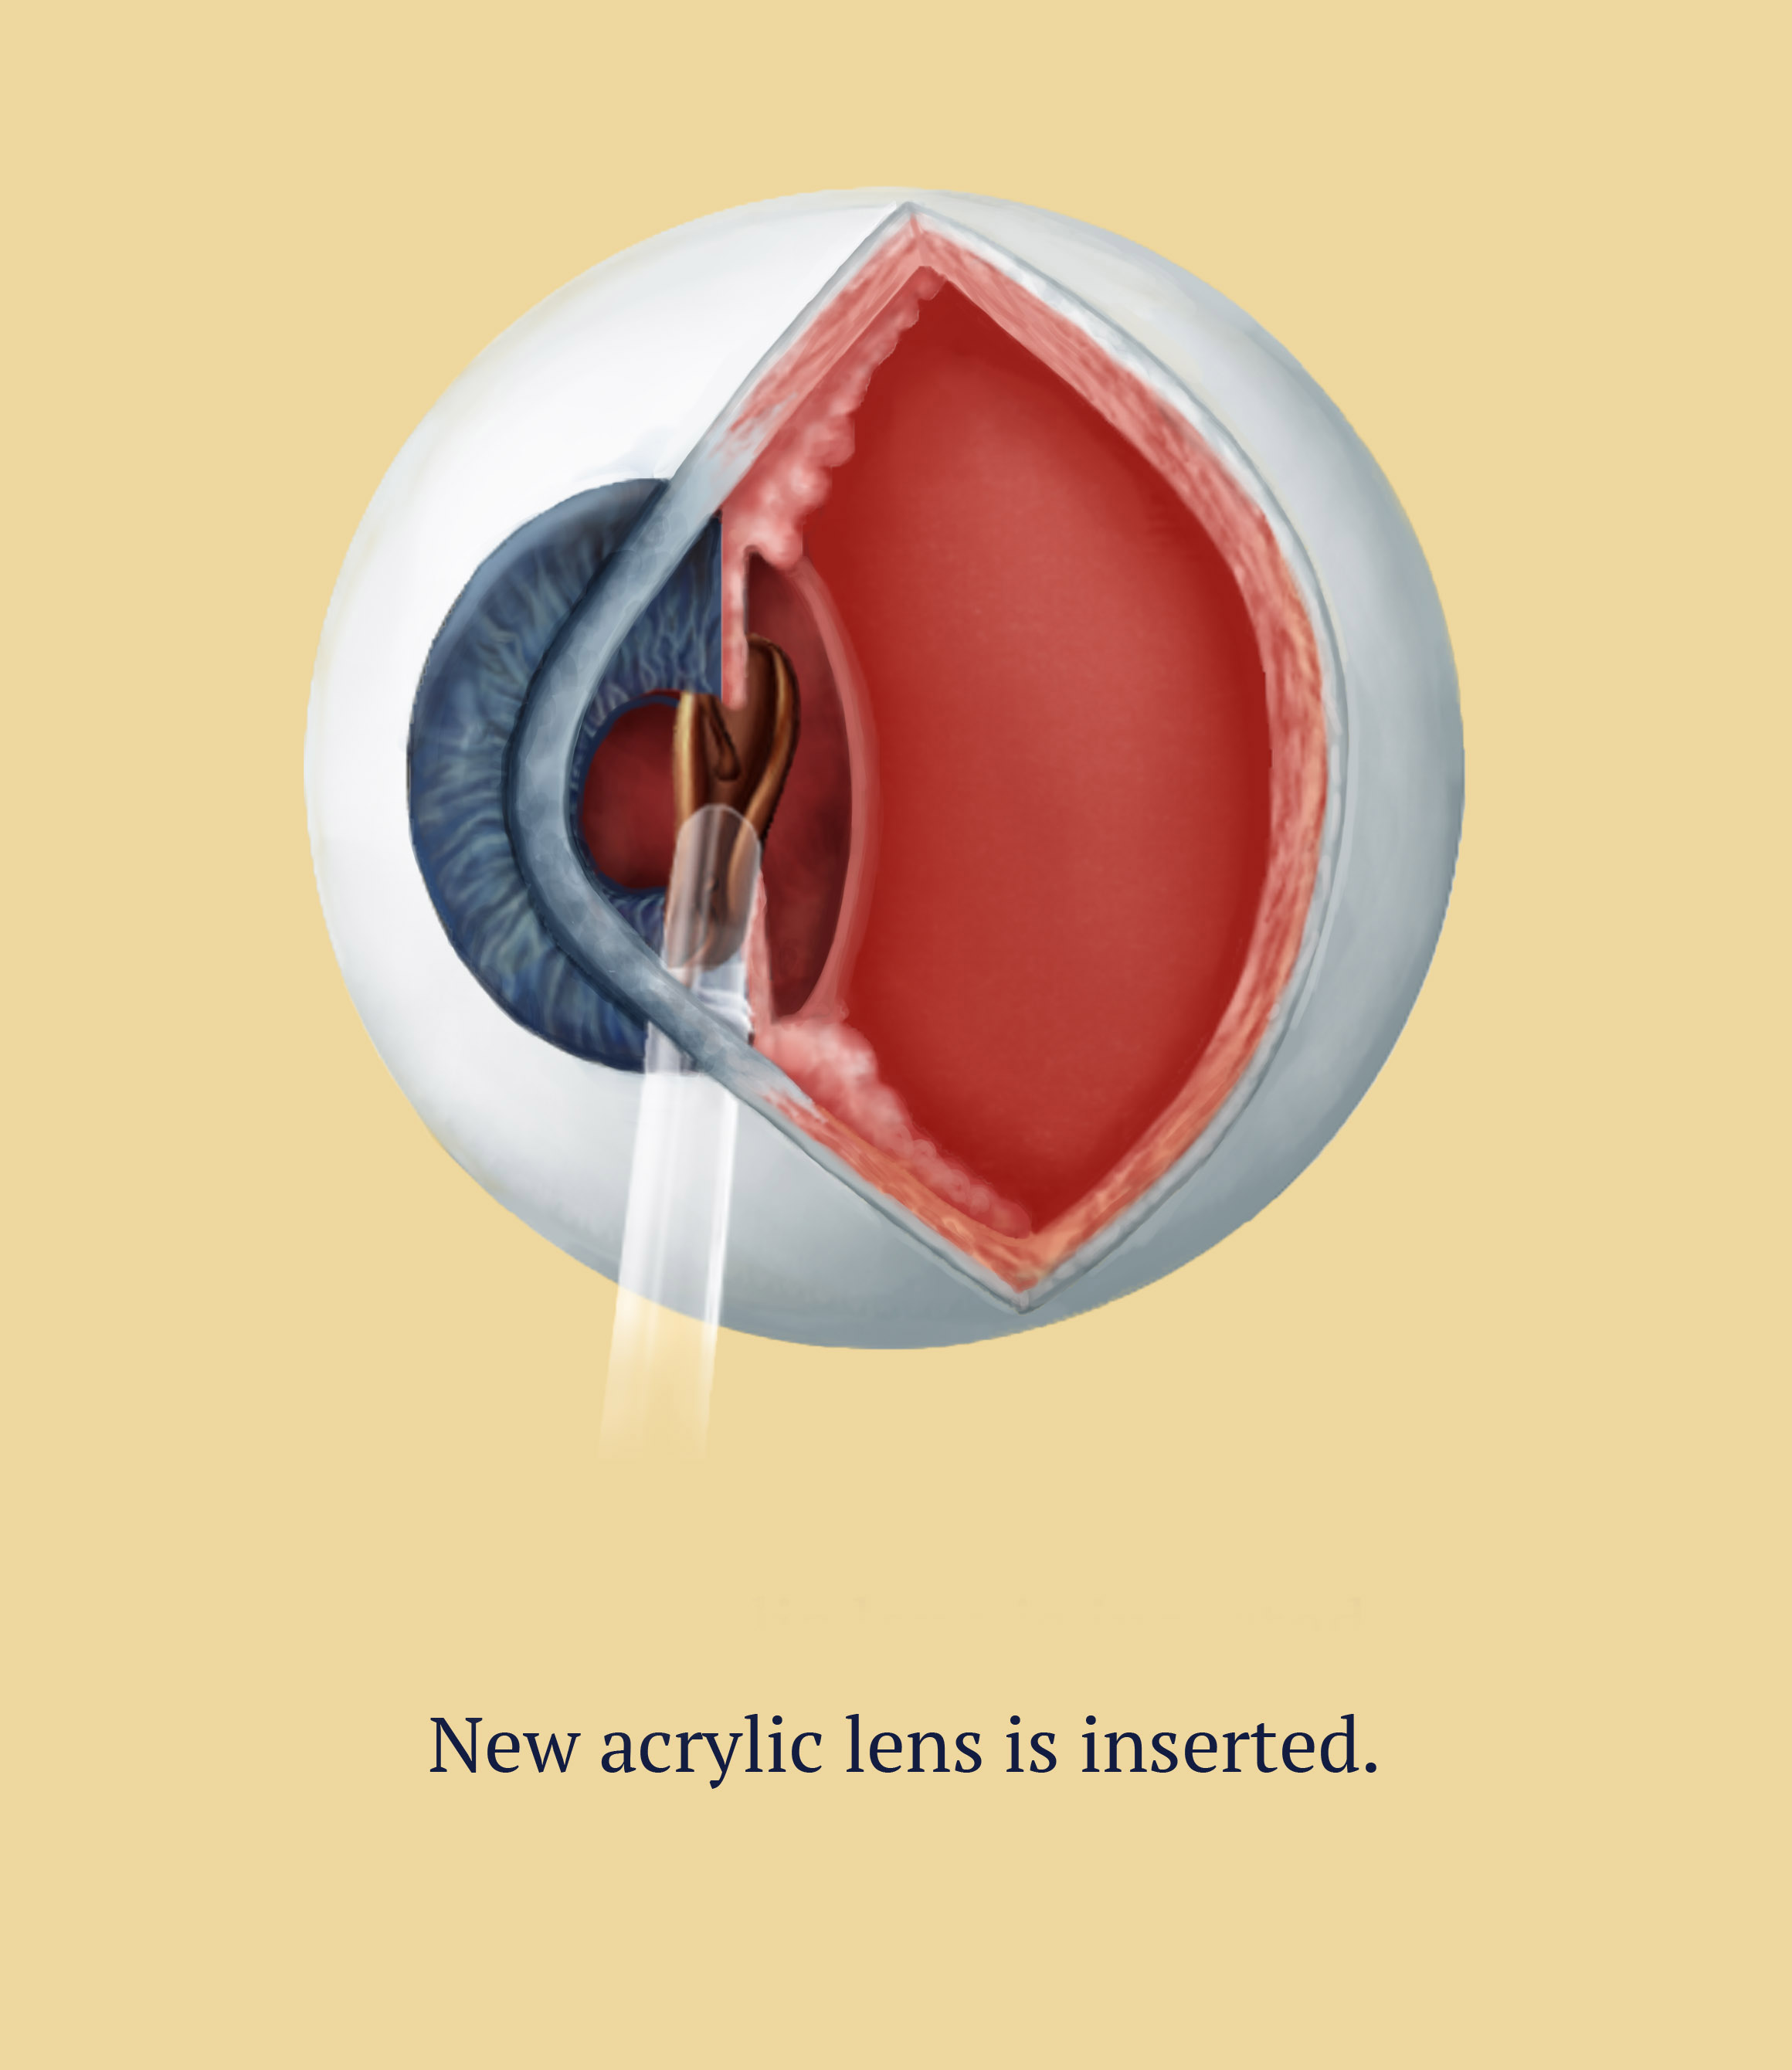 Cataract Surgery, 4 of 6, Illustration